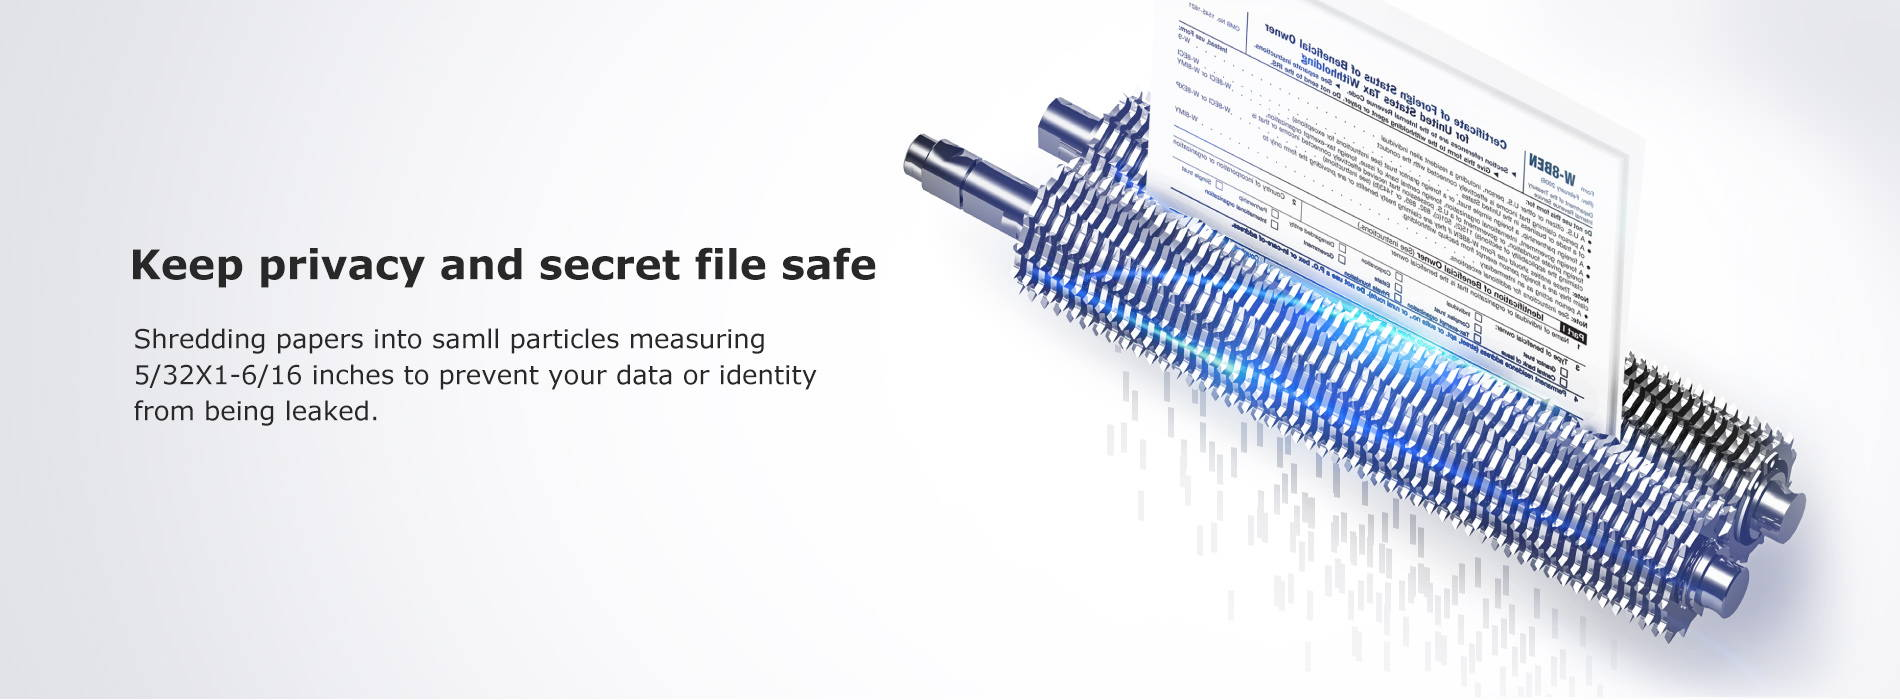 Keep privacy and secret file safe Shredding papers into samll particles measuring 5/32X1-6/16 inches to prevent your data or identity from being leaked.